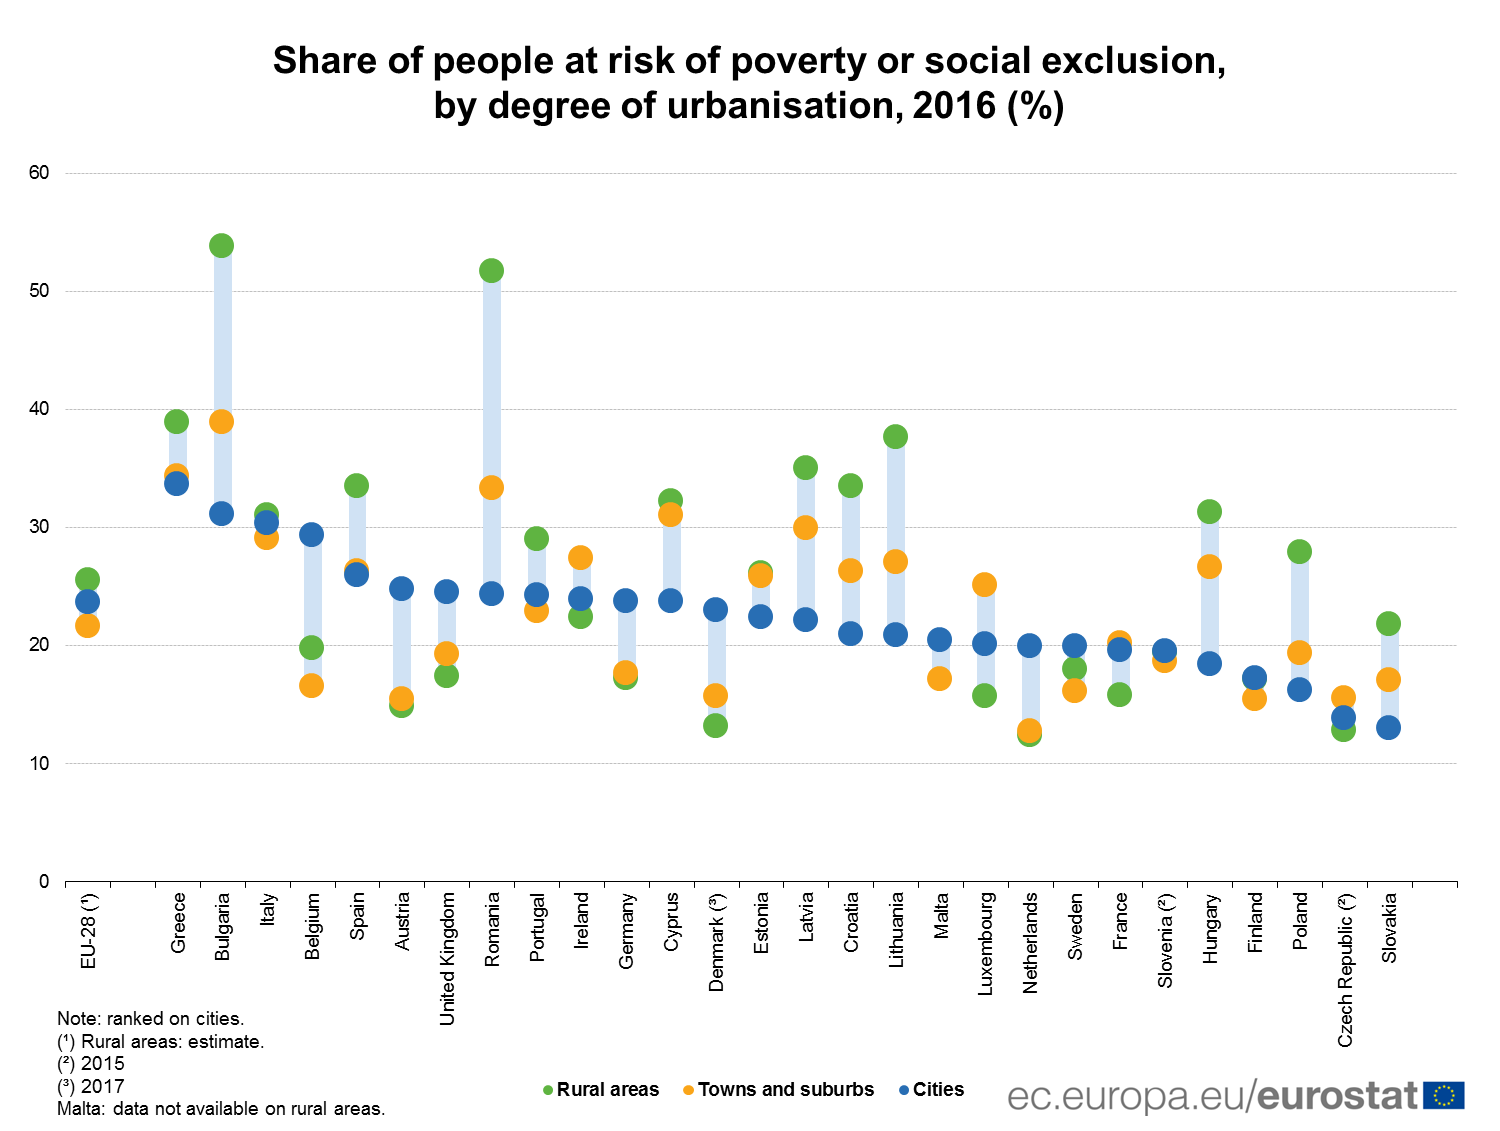 Share of people at risk of poverty or social exclusion, by degree of urbanisation